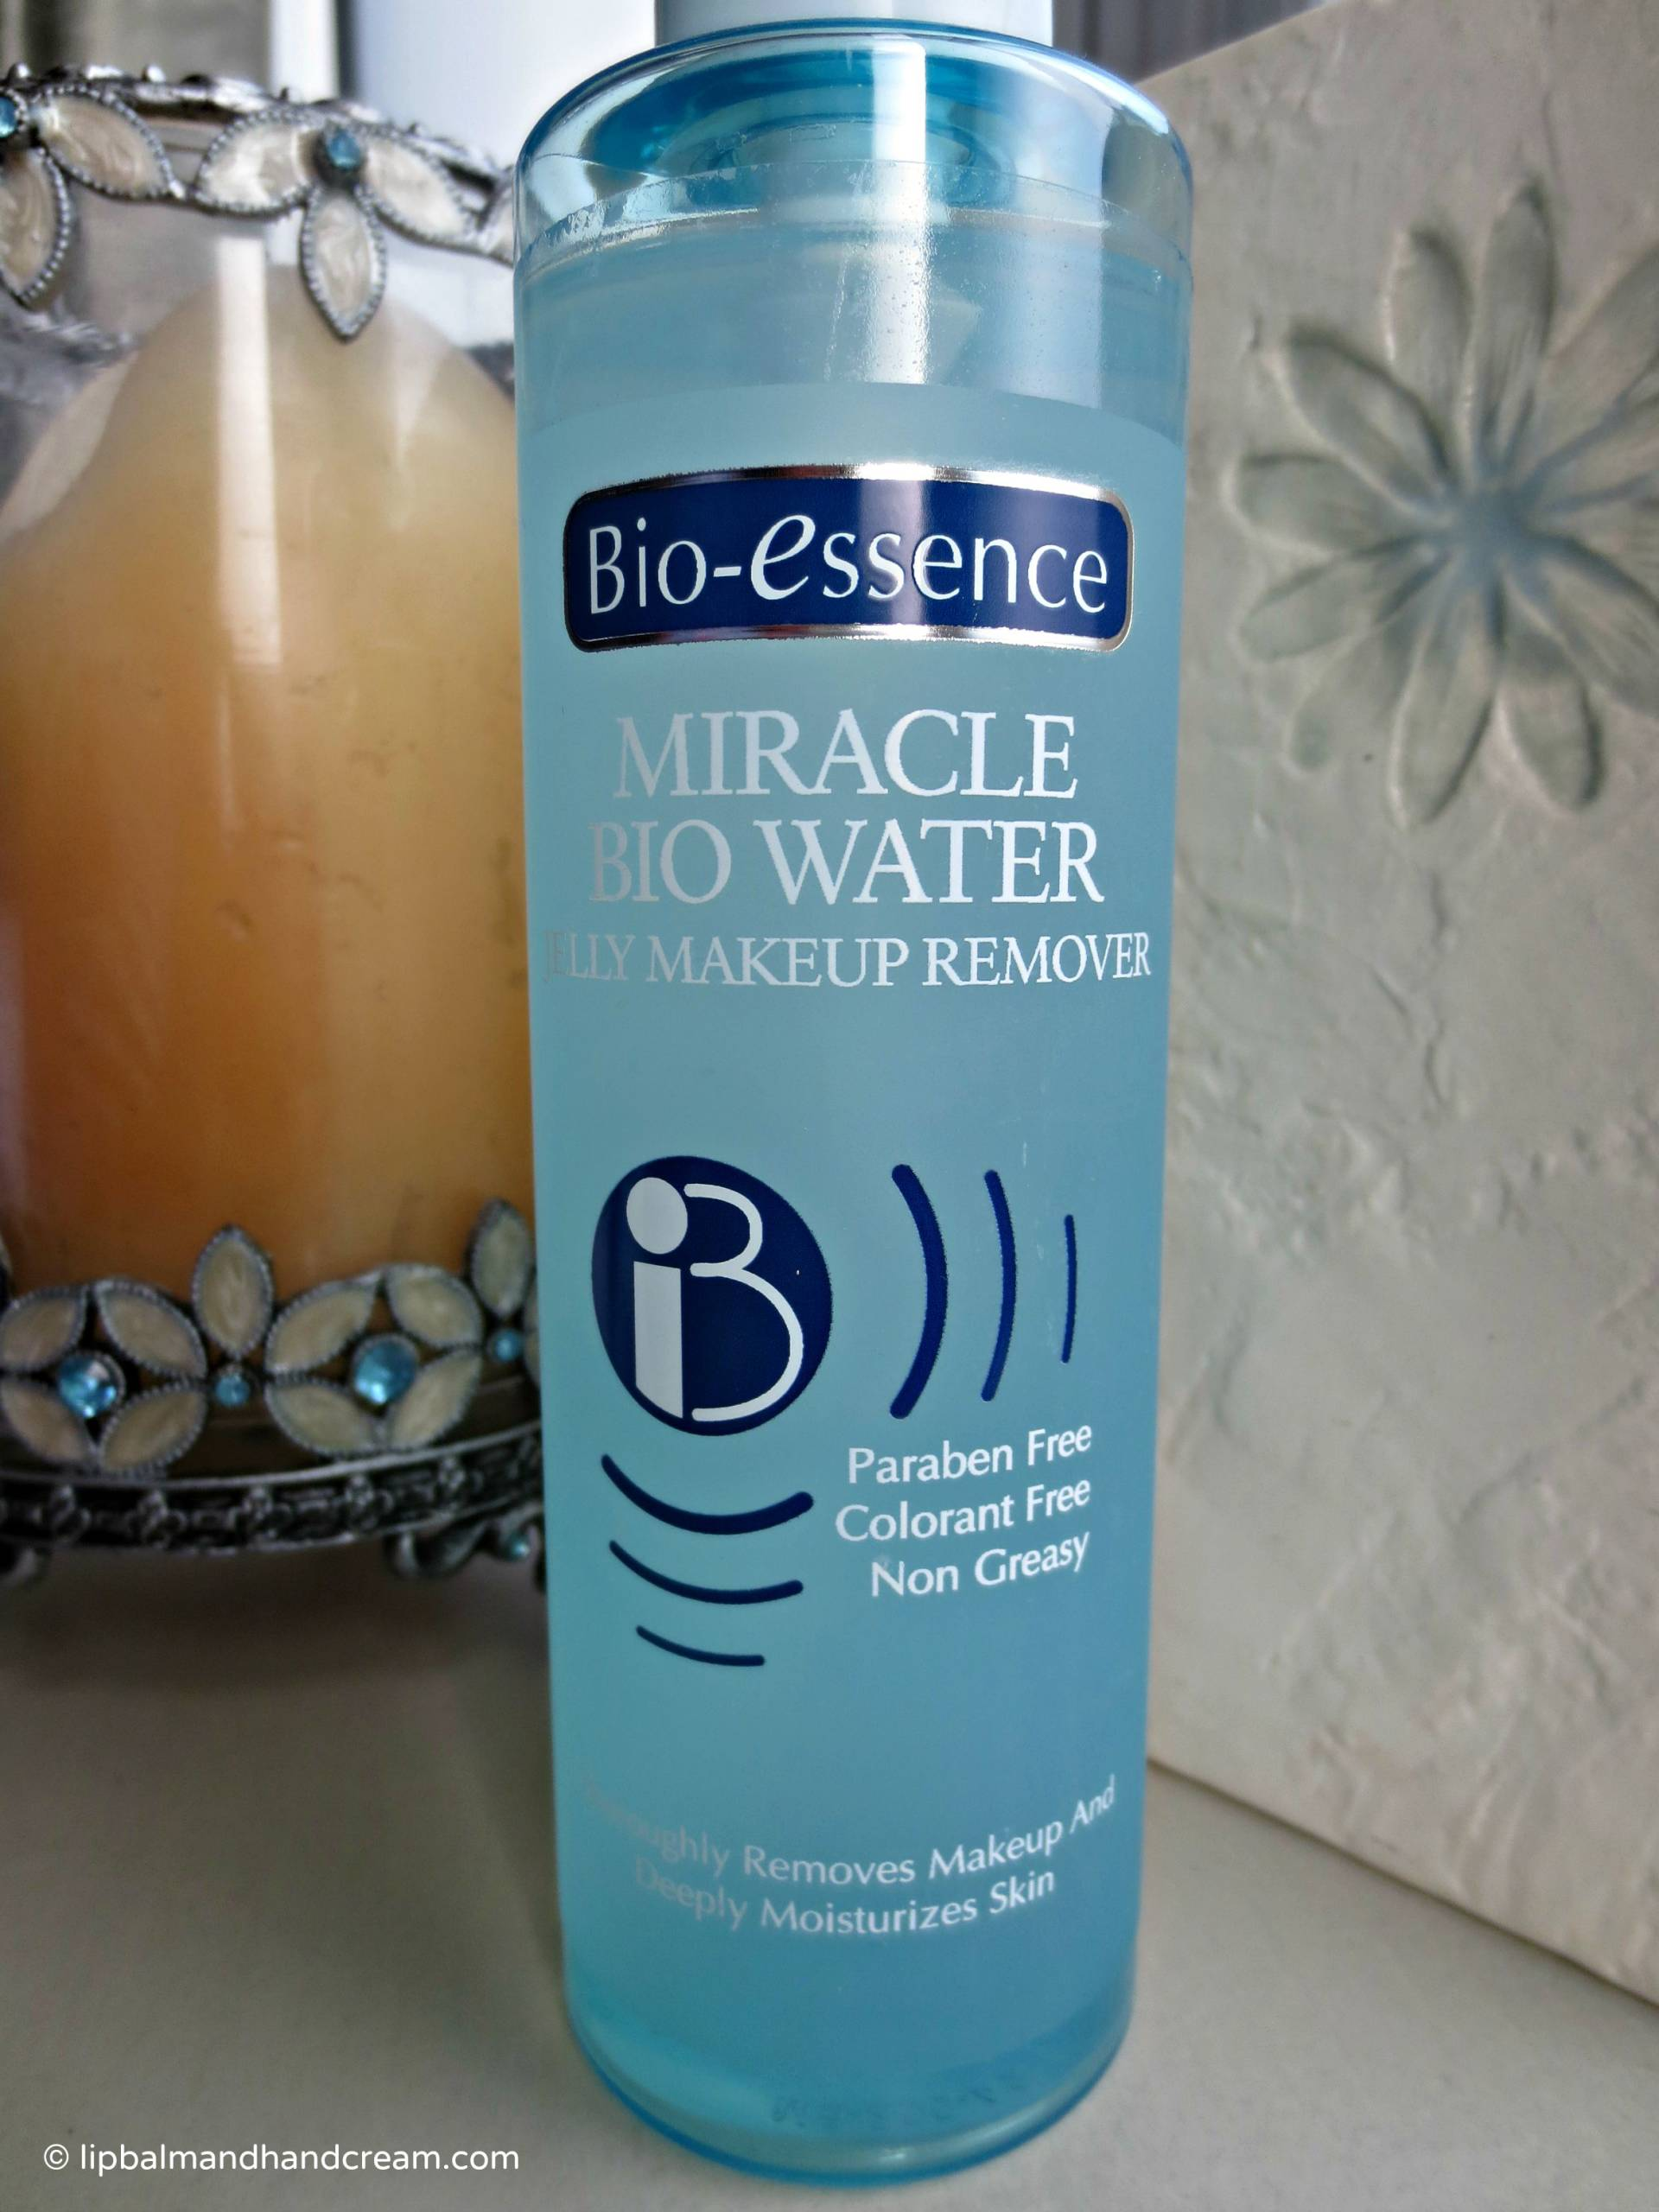 Bio-essence miracle bio water jelly makeup remover